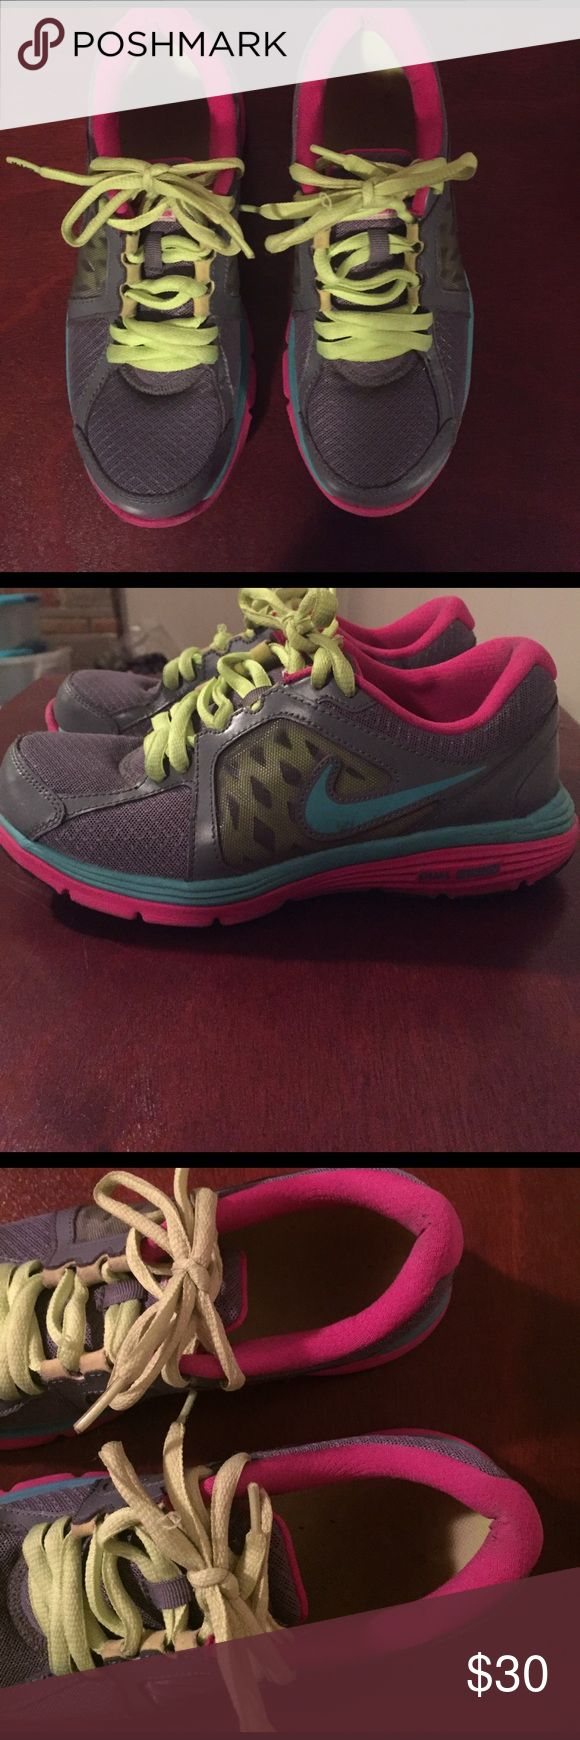 Nike shoes size 8.5 Nike shoes size 8.5. Gray pink and aqua. Do not have original shoe laces. In great condition. Smoke and pet friendly home. Nike Shoes Sneakers